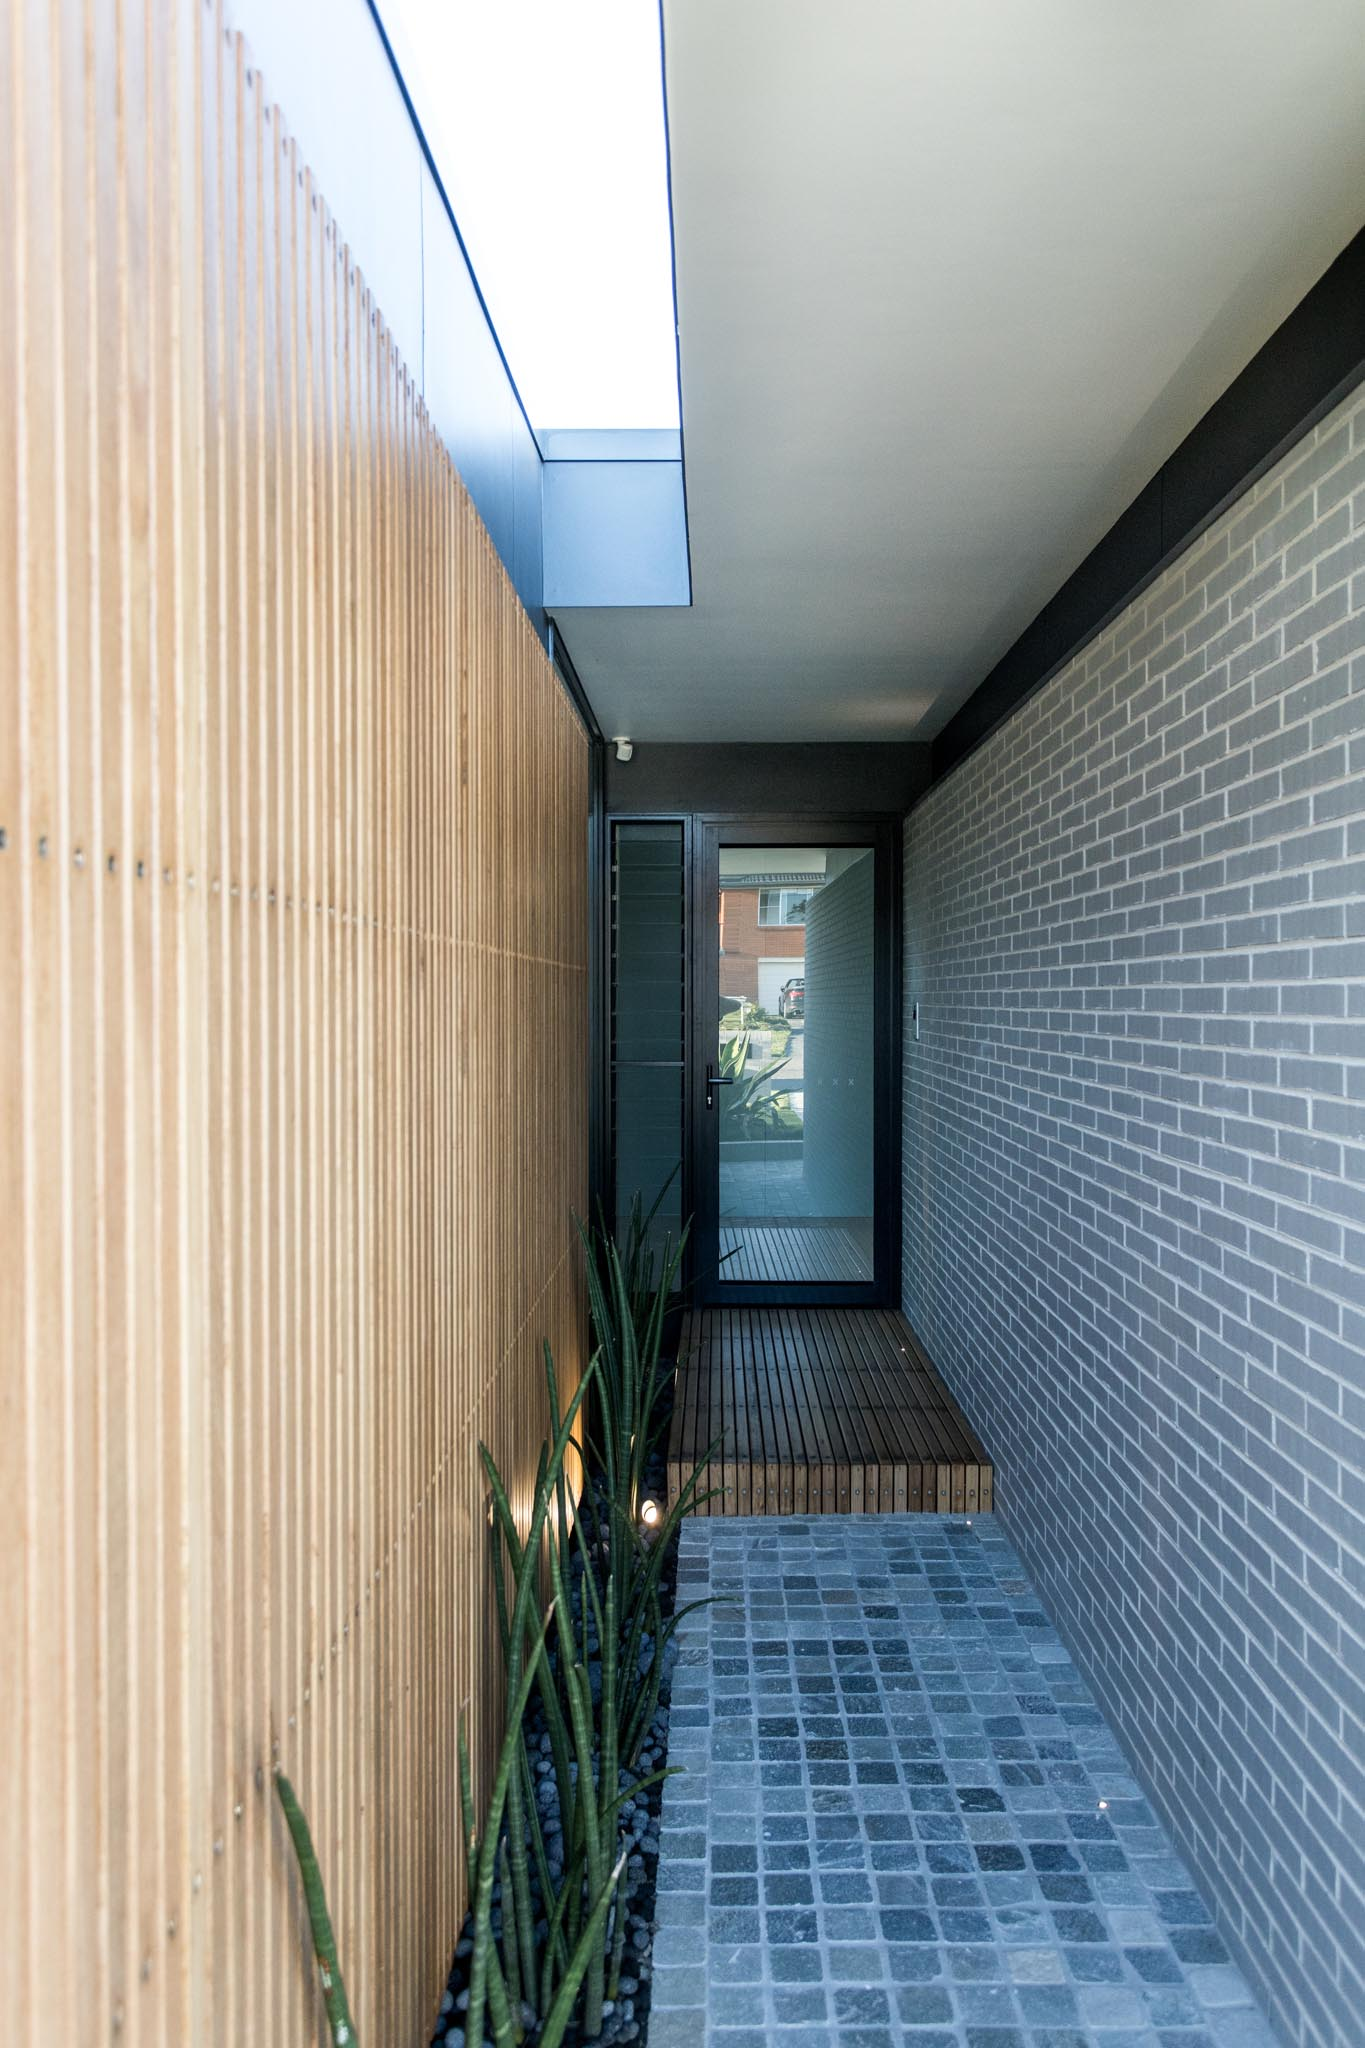 The covered entryway to this modern home is sandwiched between the wood slat wall and the new gray brick wall.